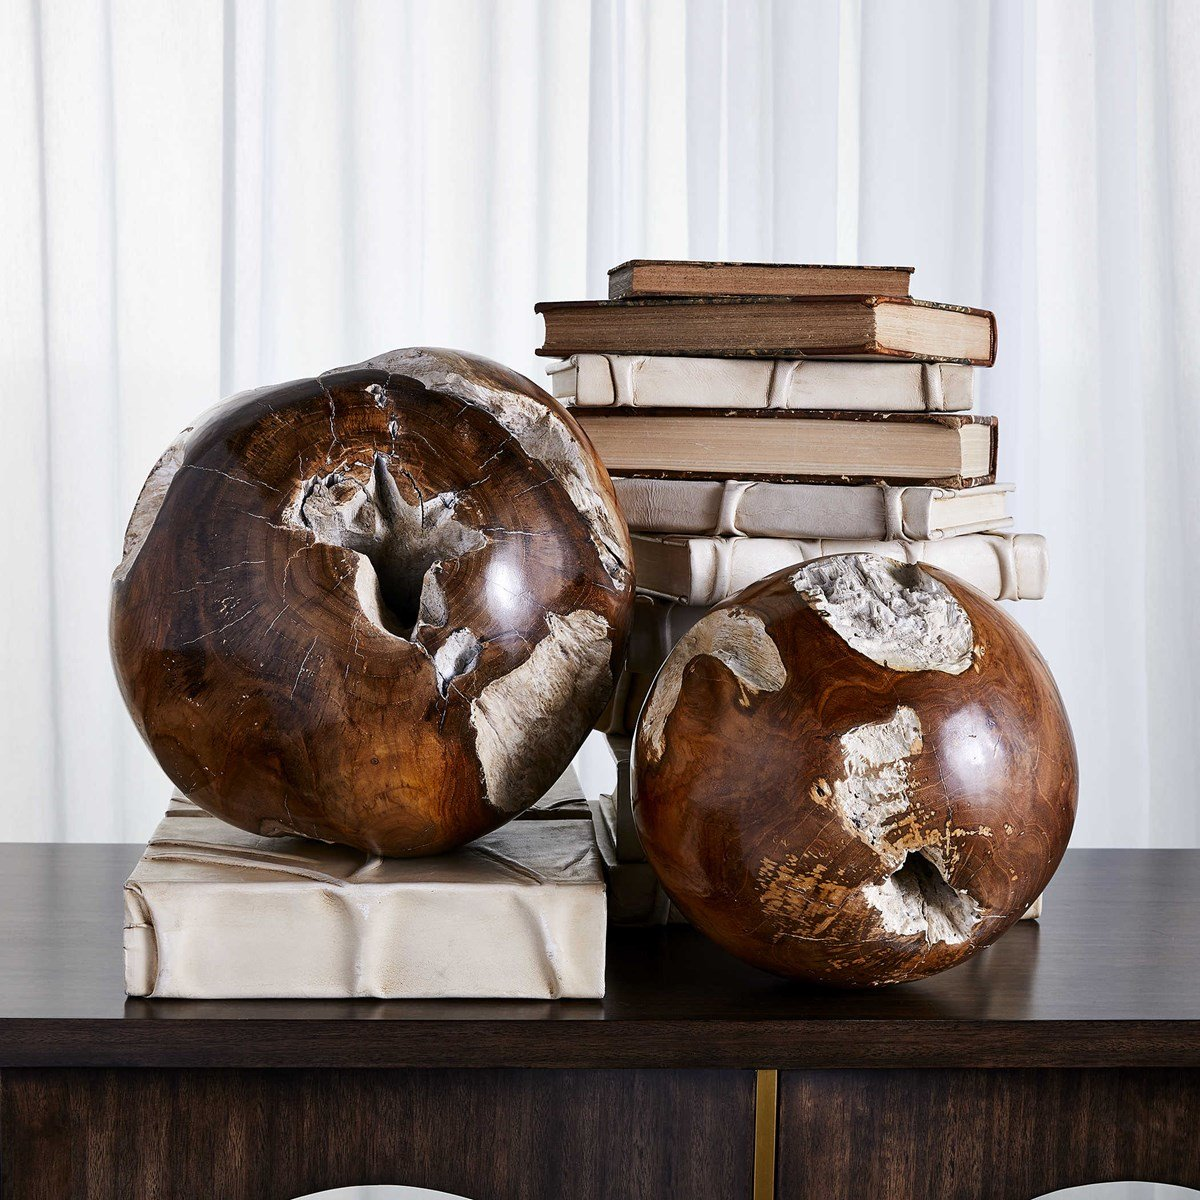 Reclaimed teak wood balls give a retro feel with their geometric shapes